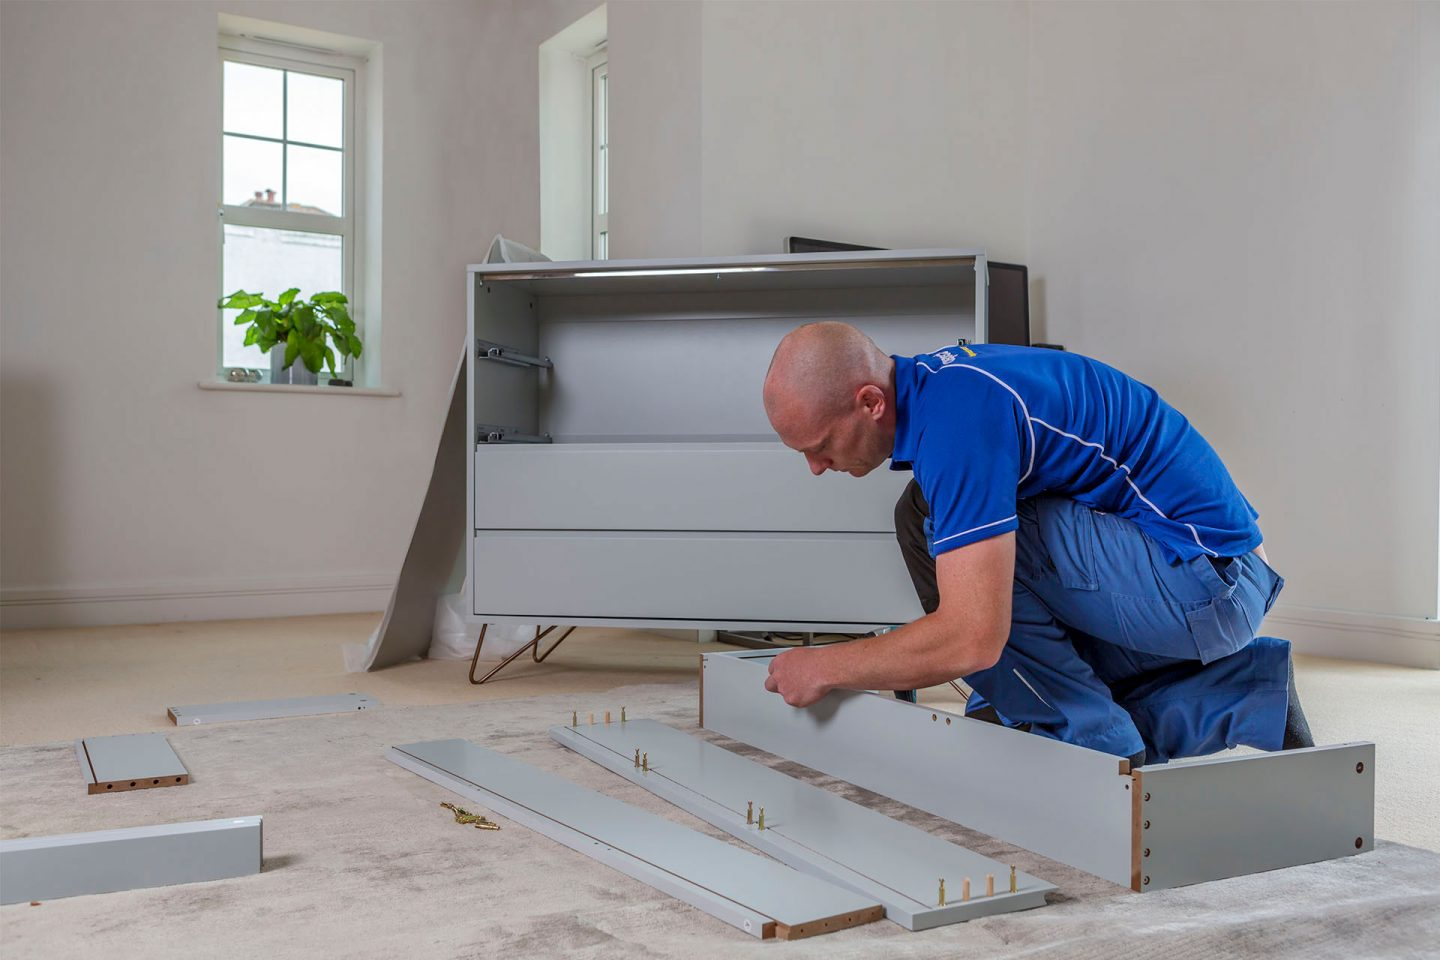 Flat pack furniture assembly service in London